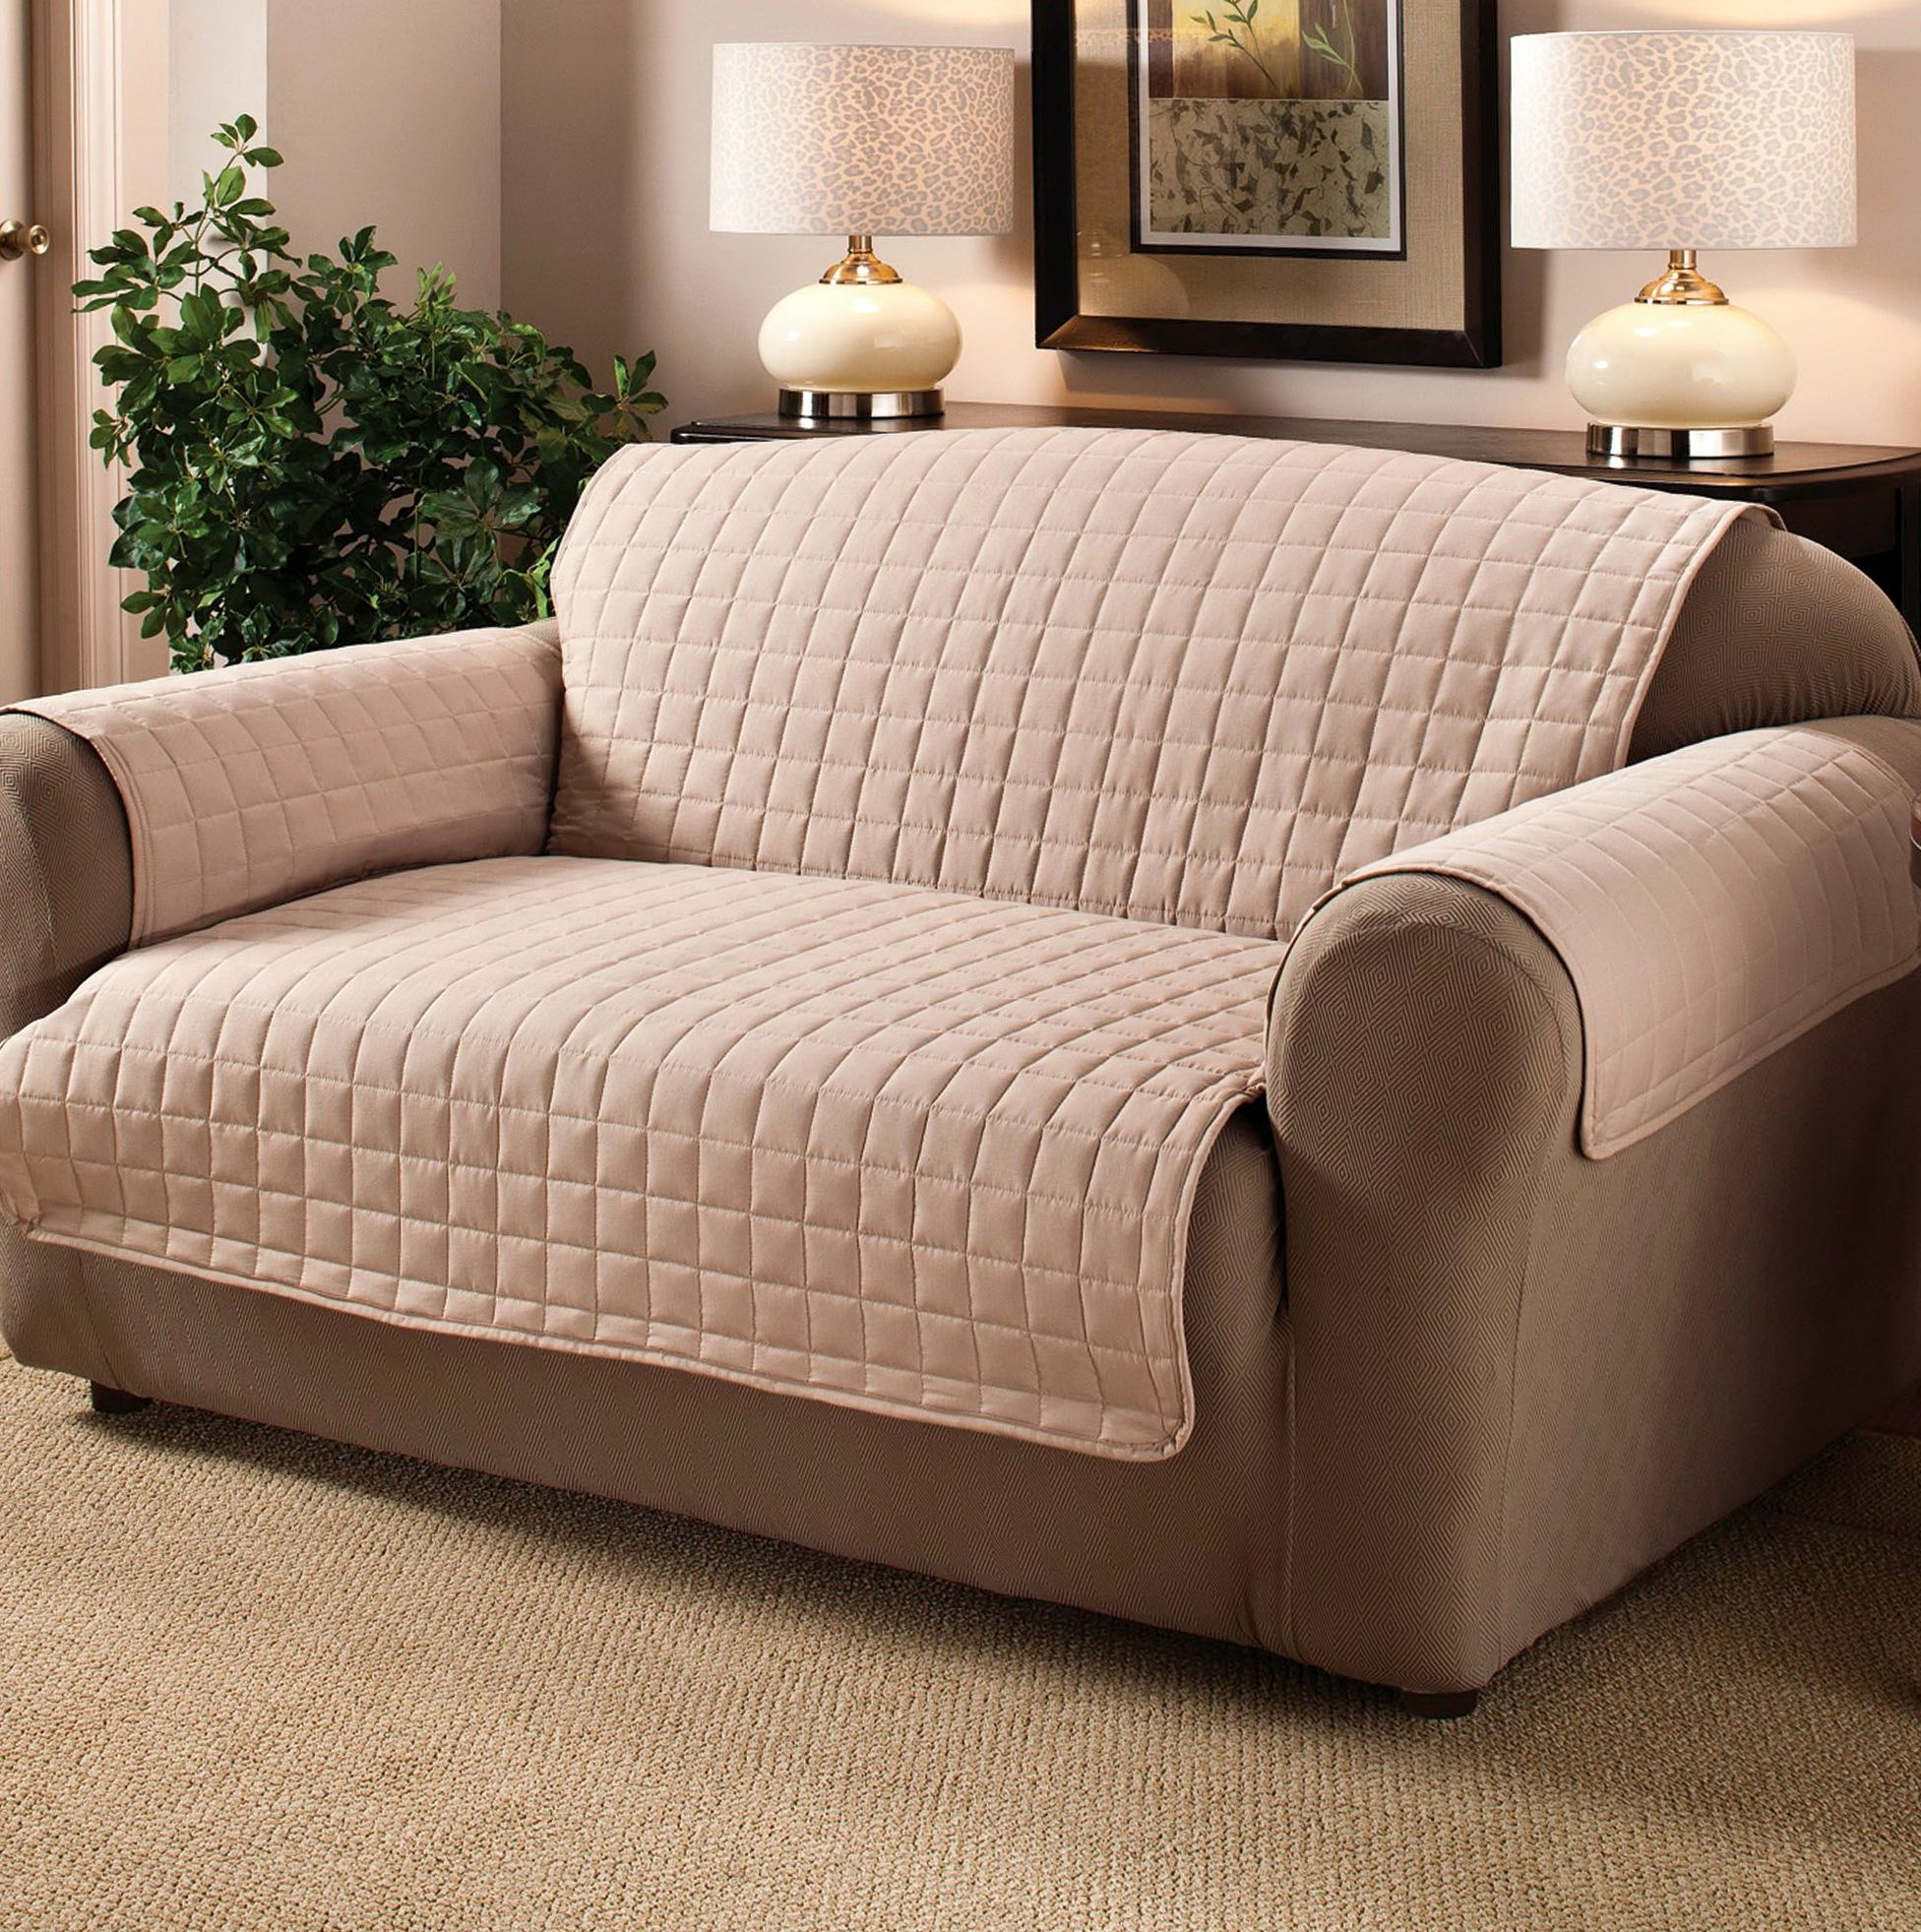 Scotch And Sofa Sling Cover Photograpy Plastic Covers With